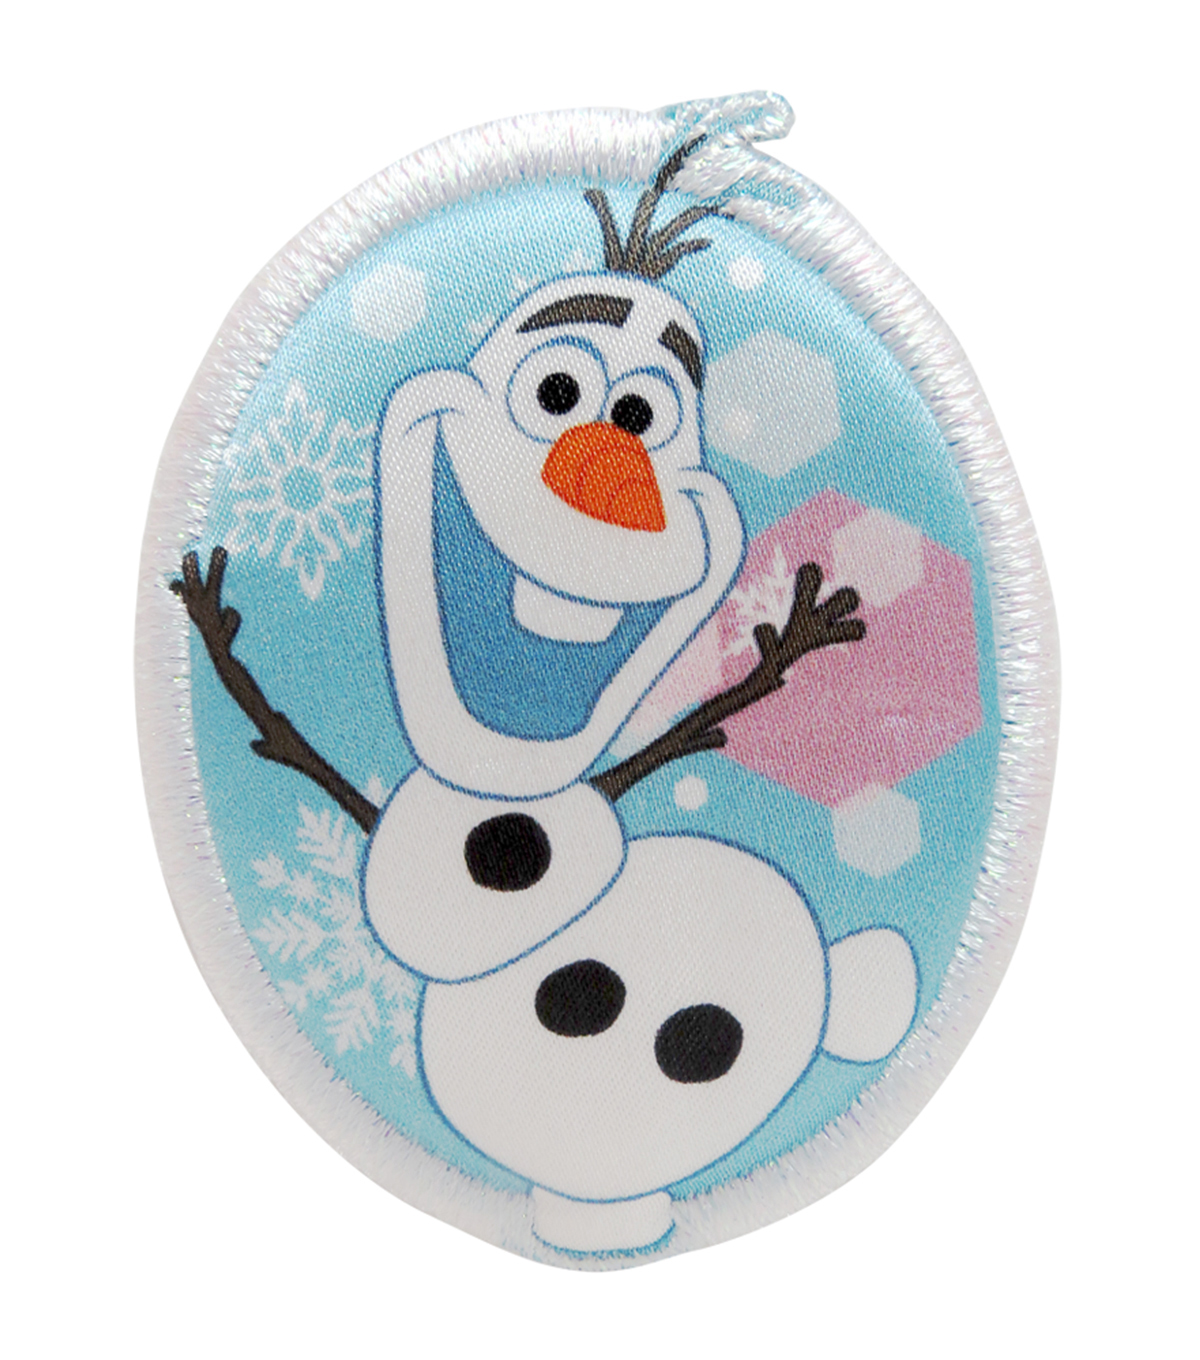 Wrights Disney® Olaf Frozen Iron-On Appliques